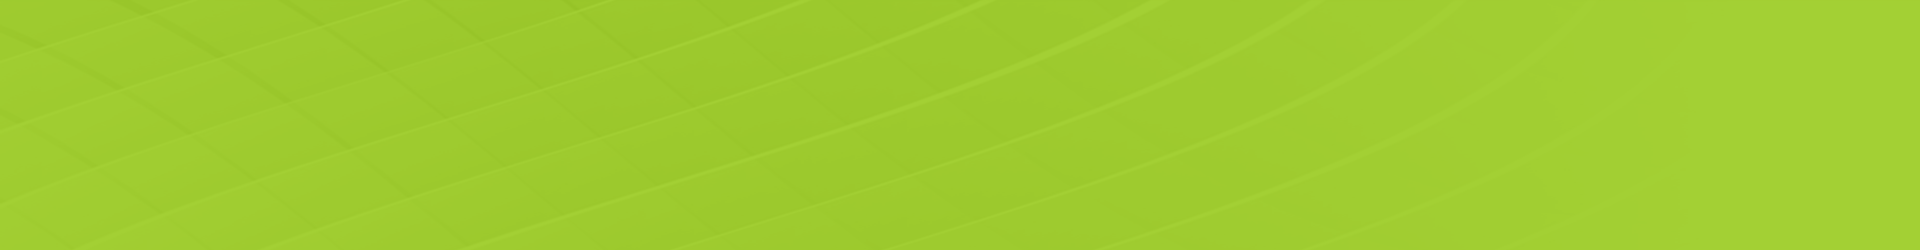 banner-green.png